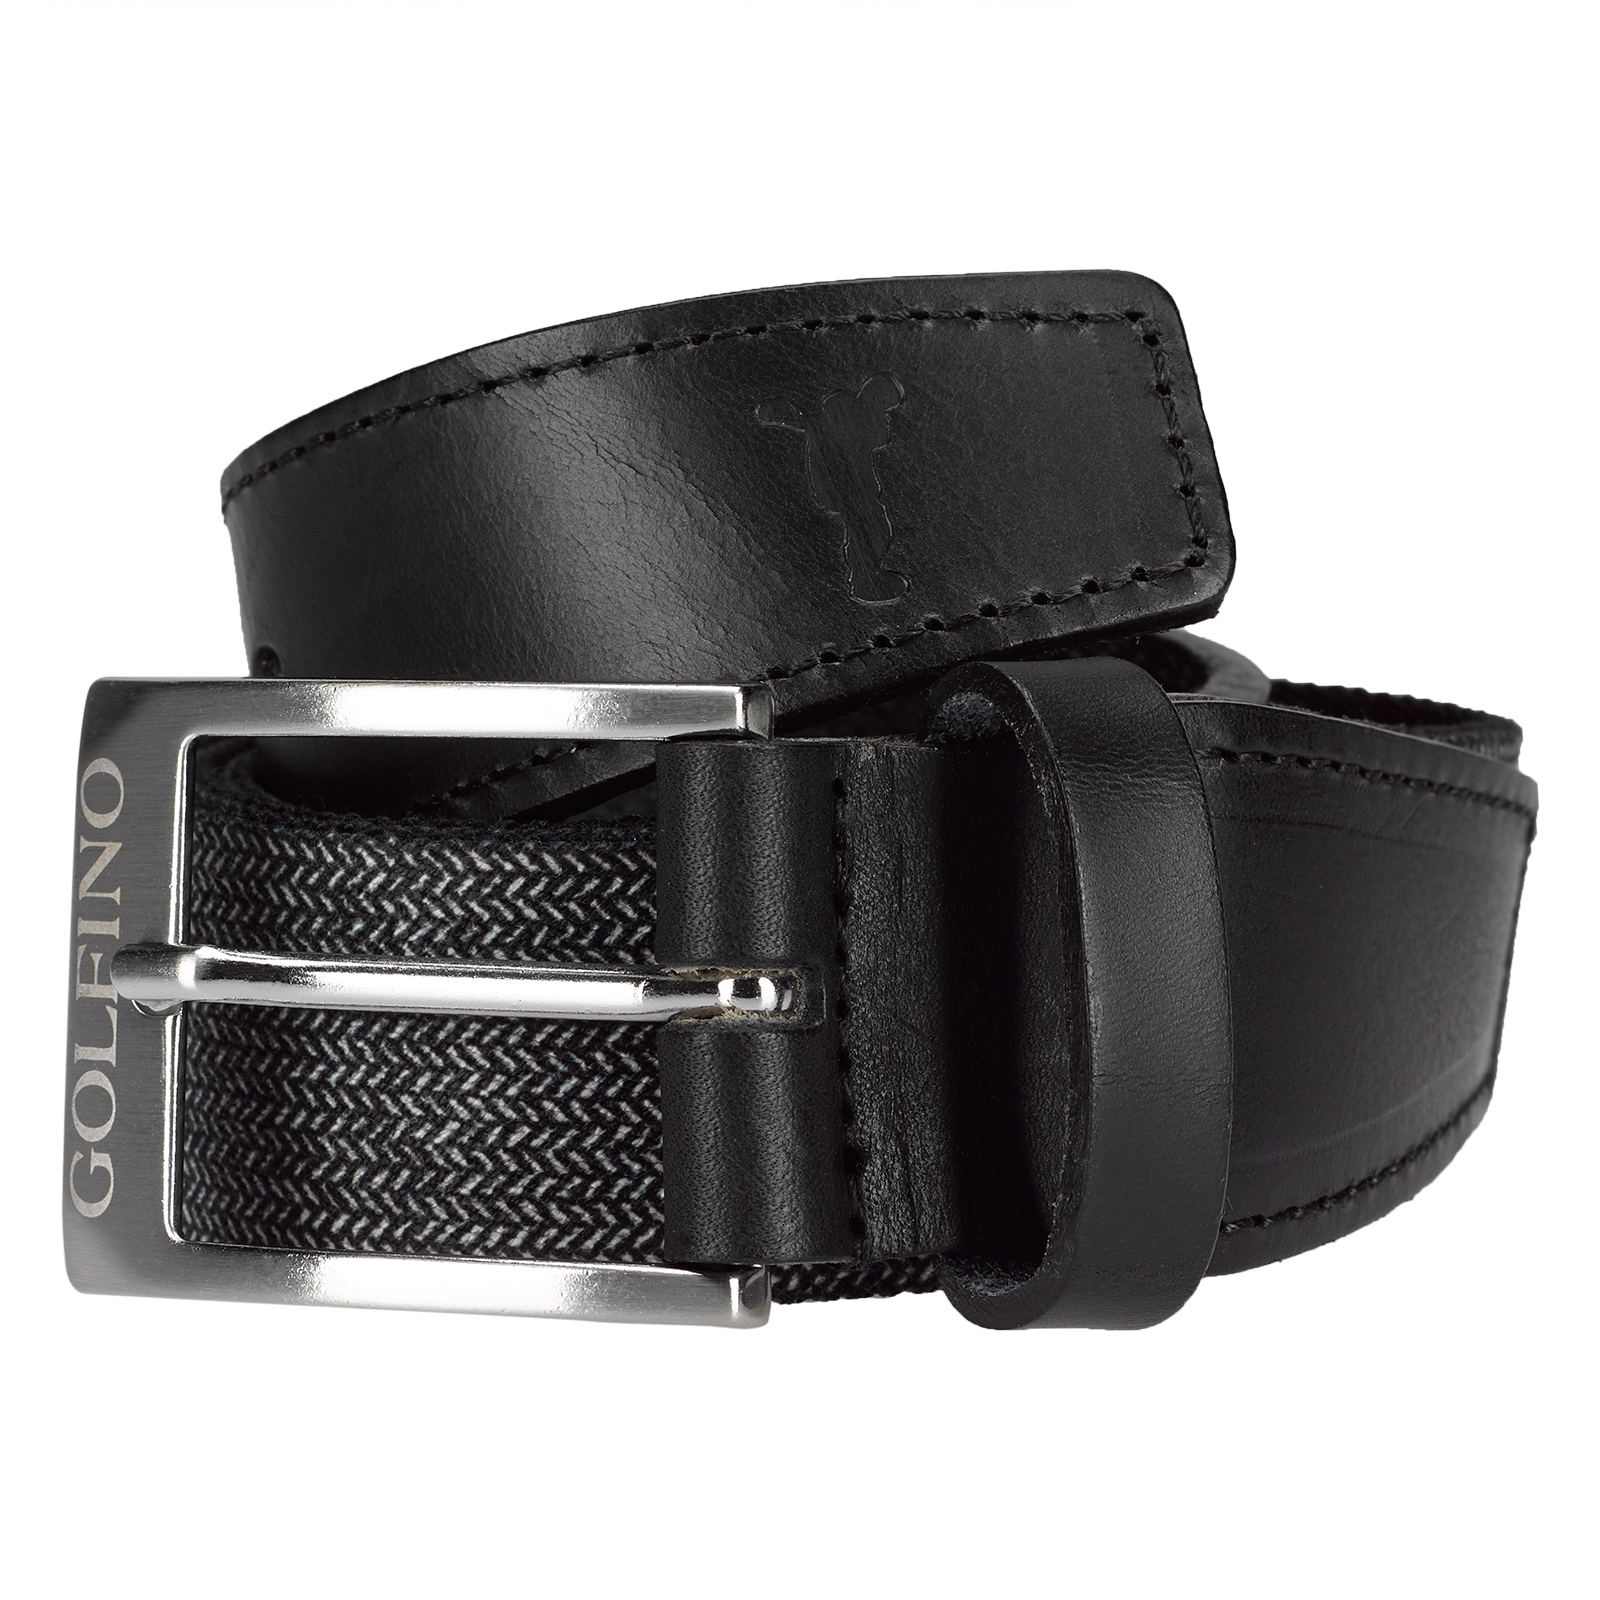 Elegant and elastic men's golf belt with exclusive leather trim